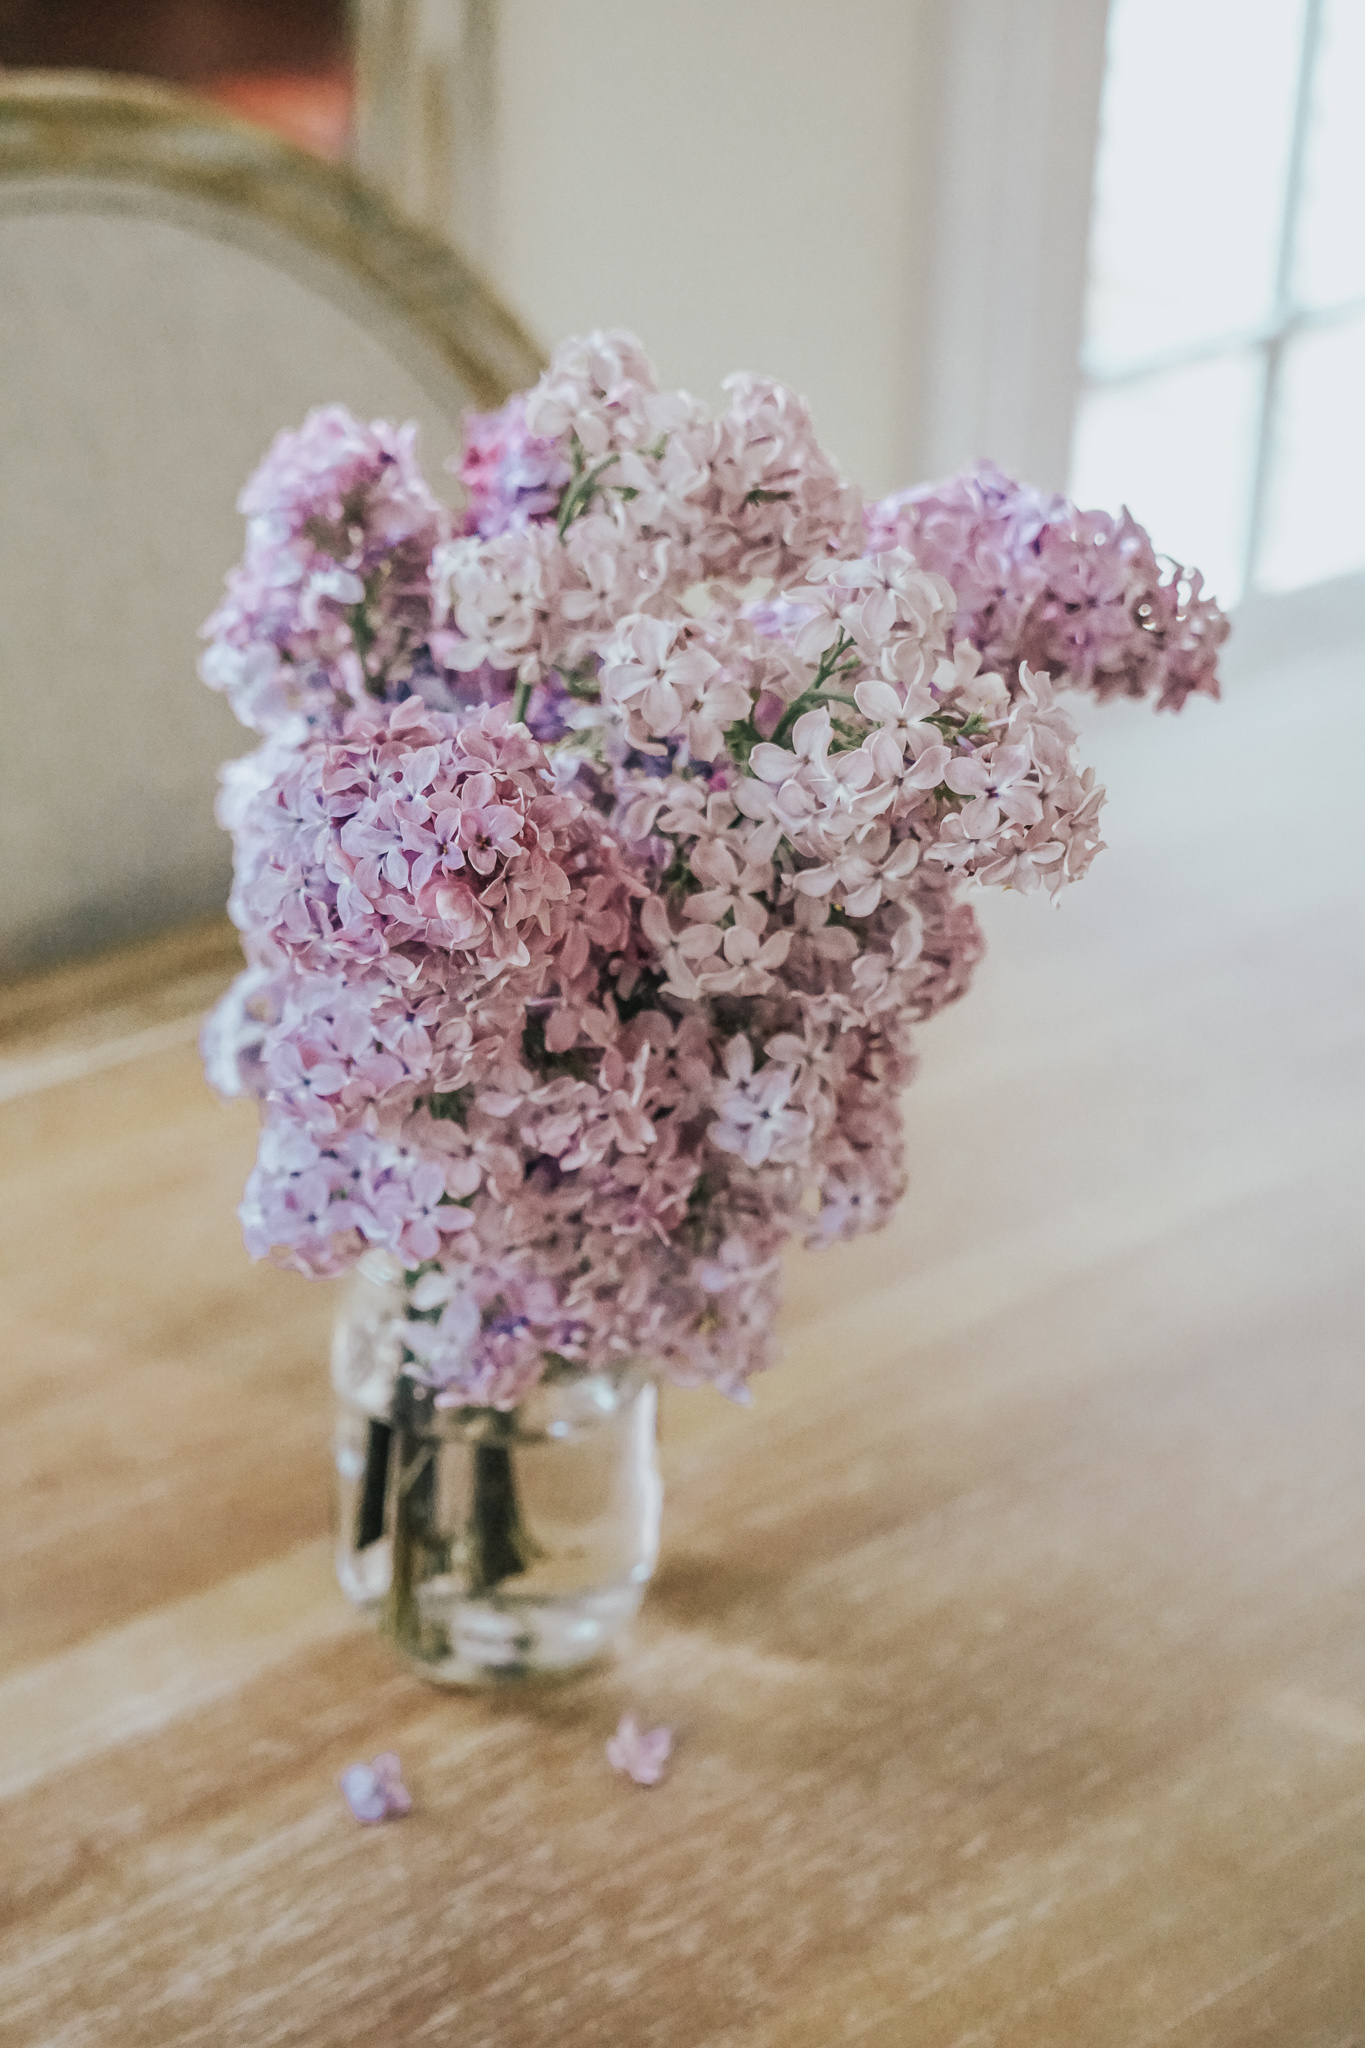 lilac on table- sharing lilac tips